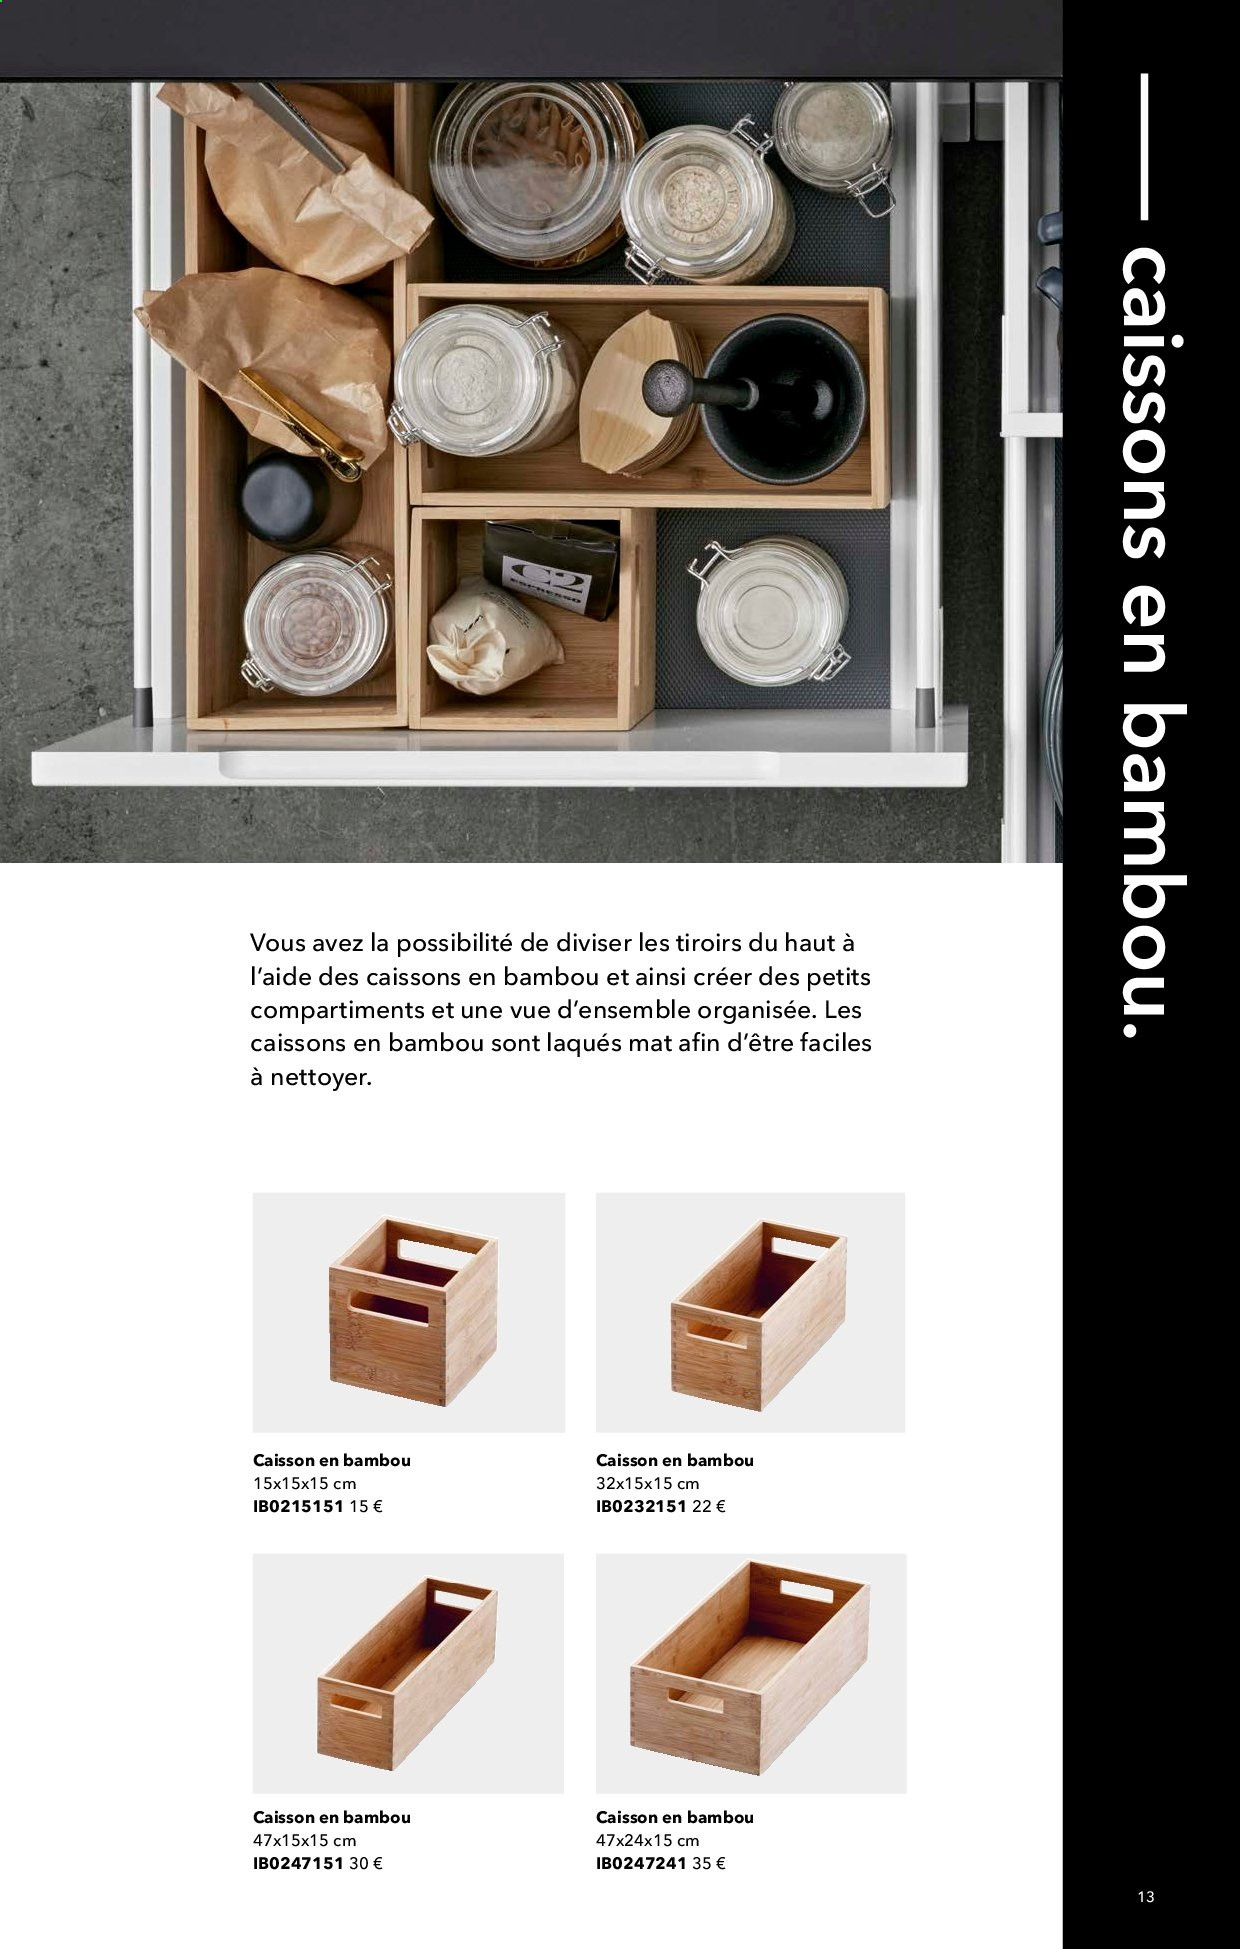 Catalogue Kvik. Page 13.